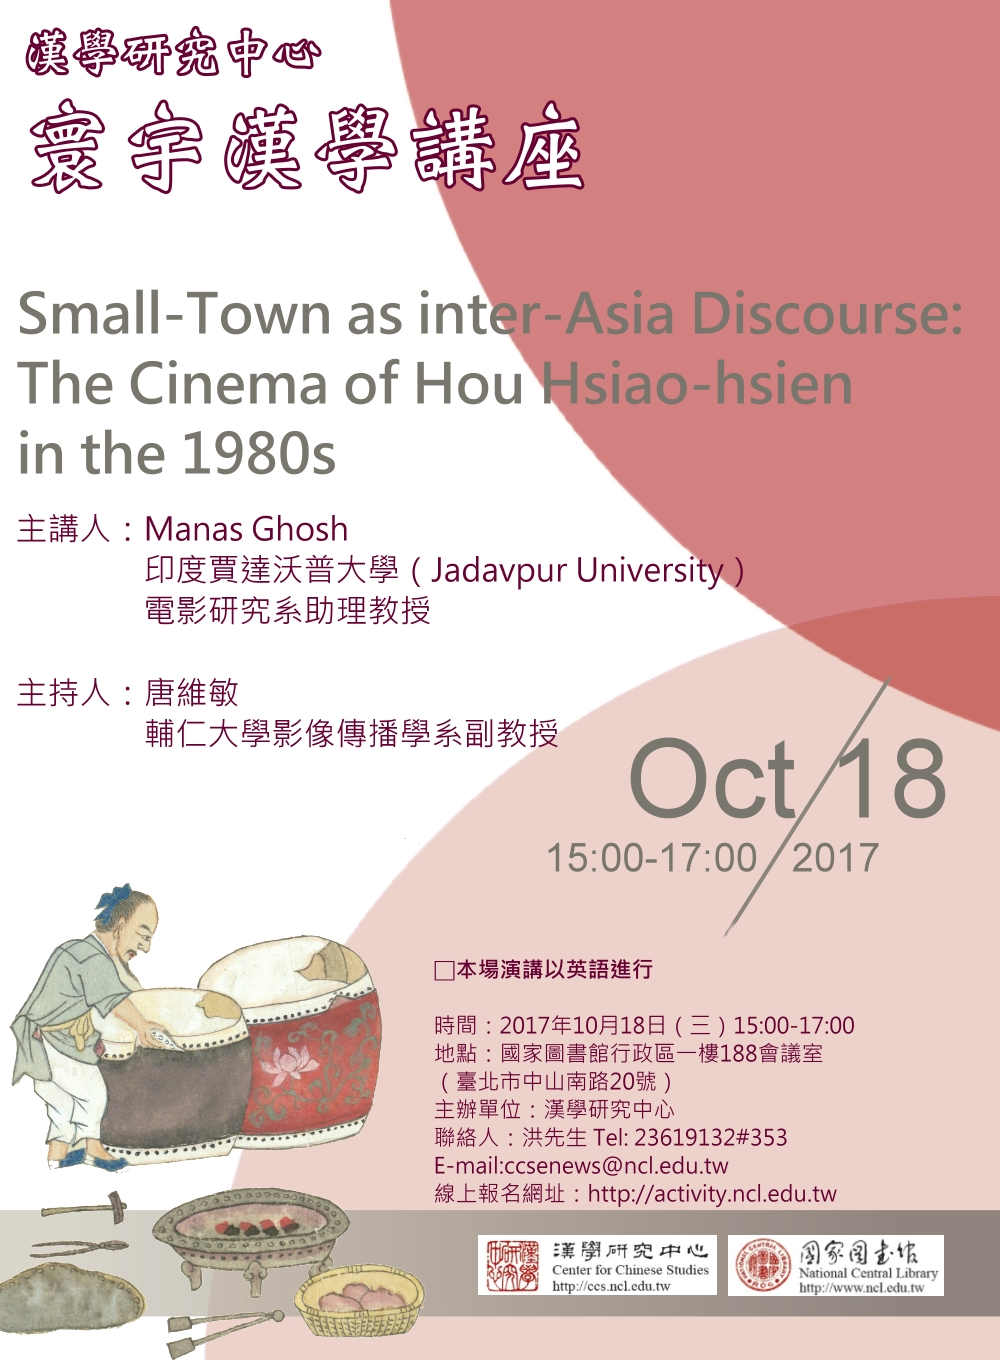 Samll-Town as inter-Asia Discourse: The Cinema of Hou Hsiao-hsien(侯孝賢) in the 1980s